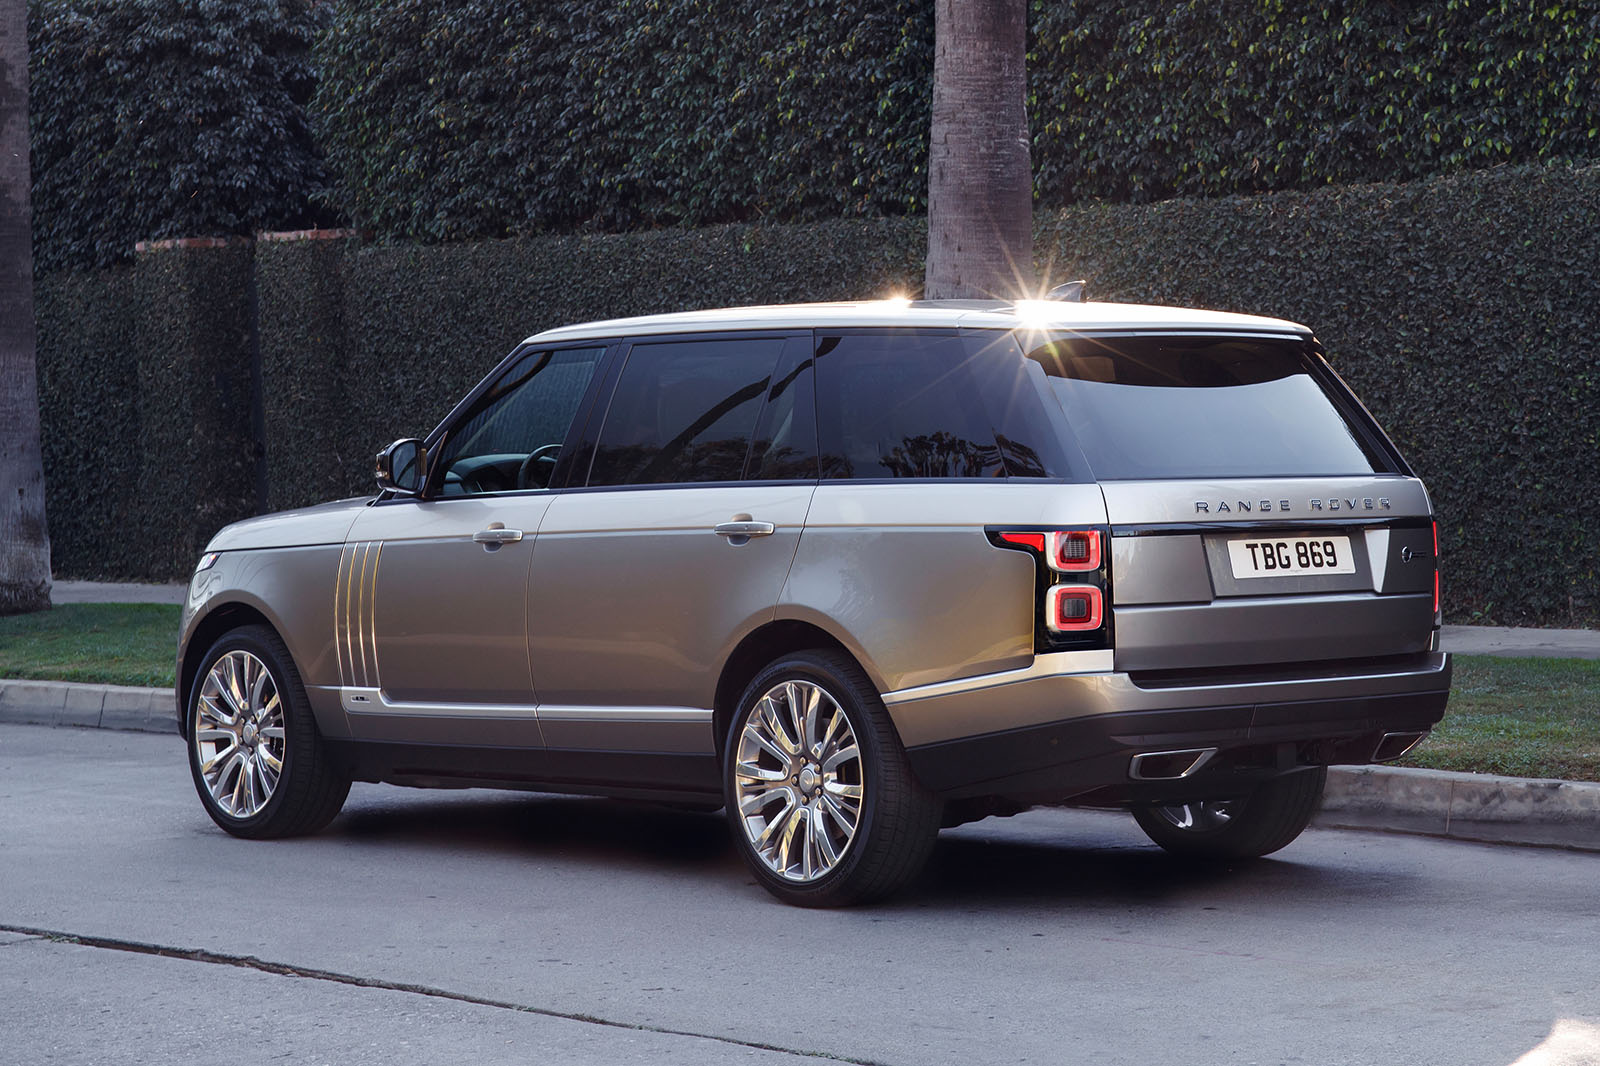 extended range rover svautobiography revealed autocar. Black Bedroom Furniture Sets. Home Design Ideas